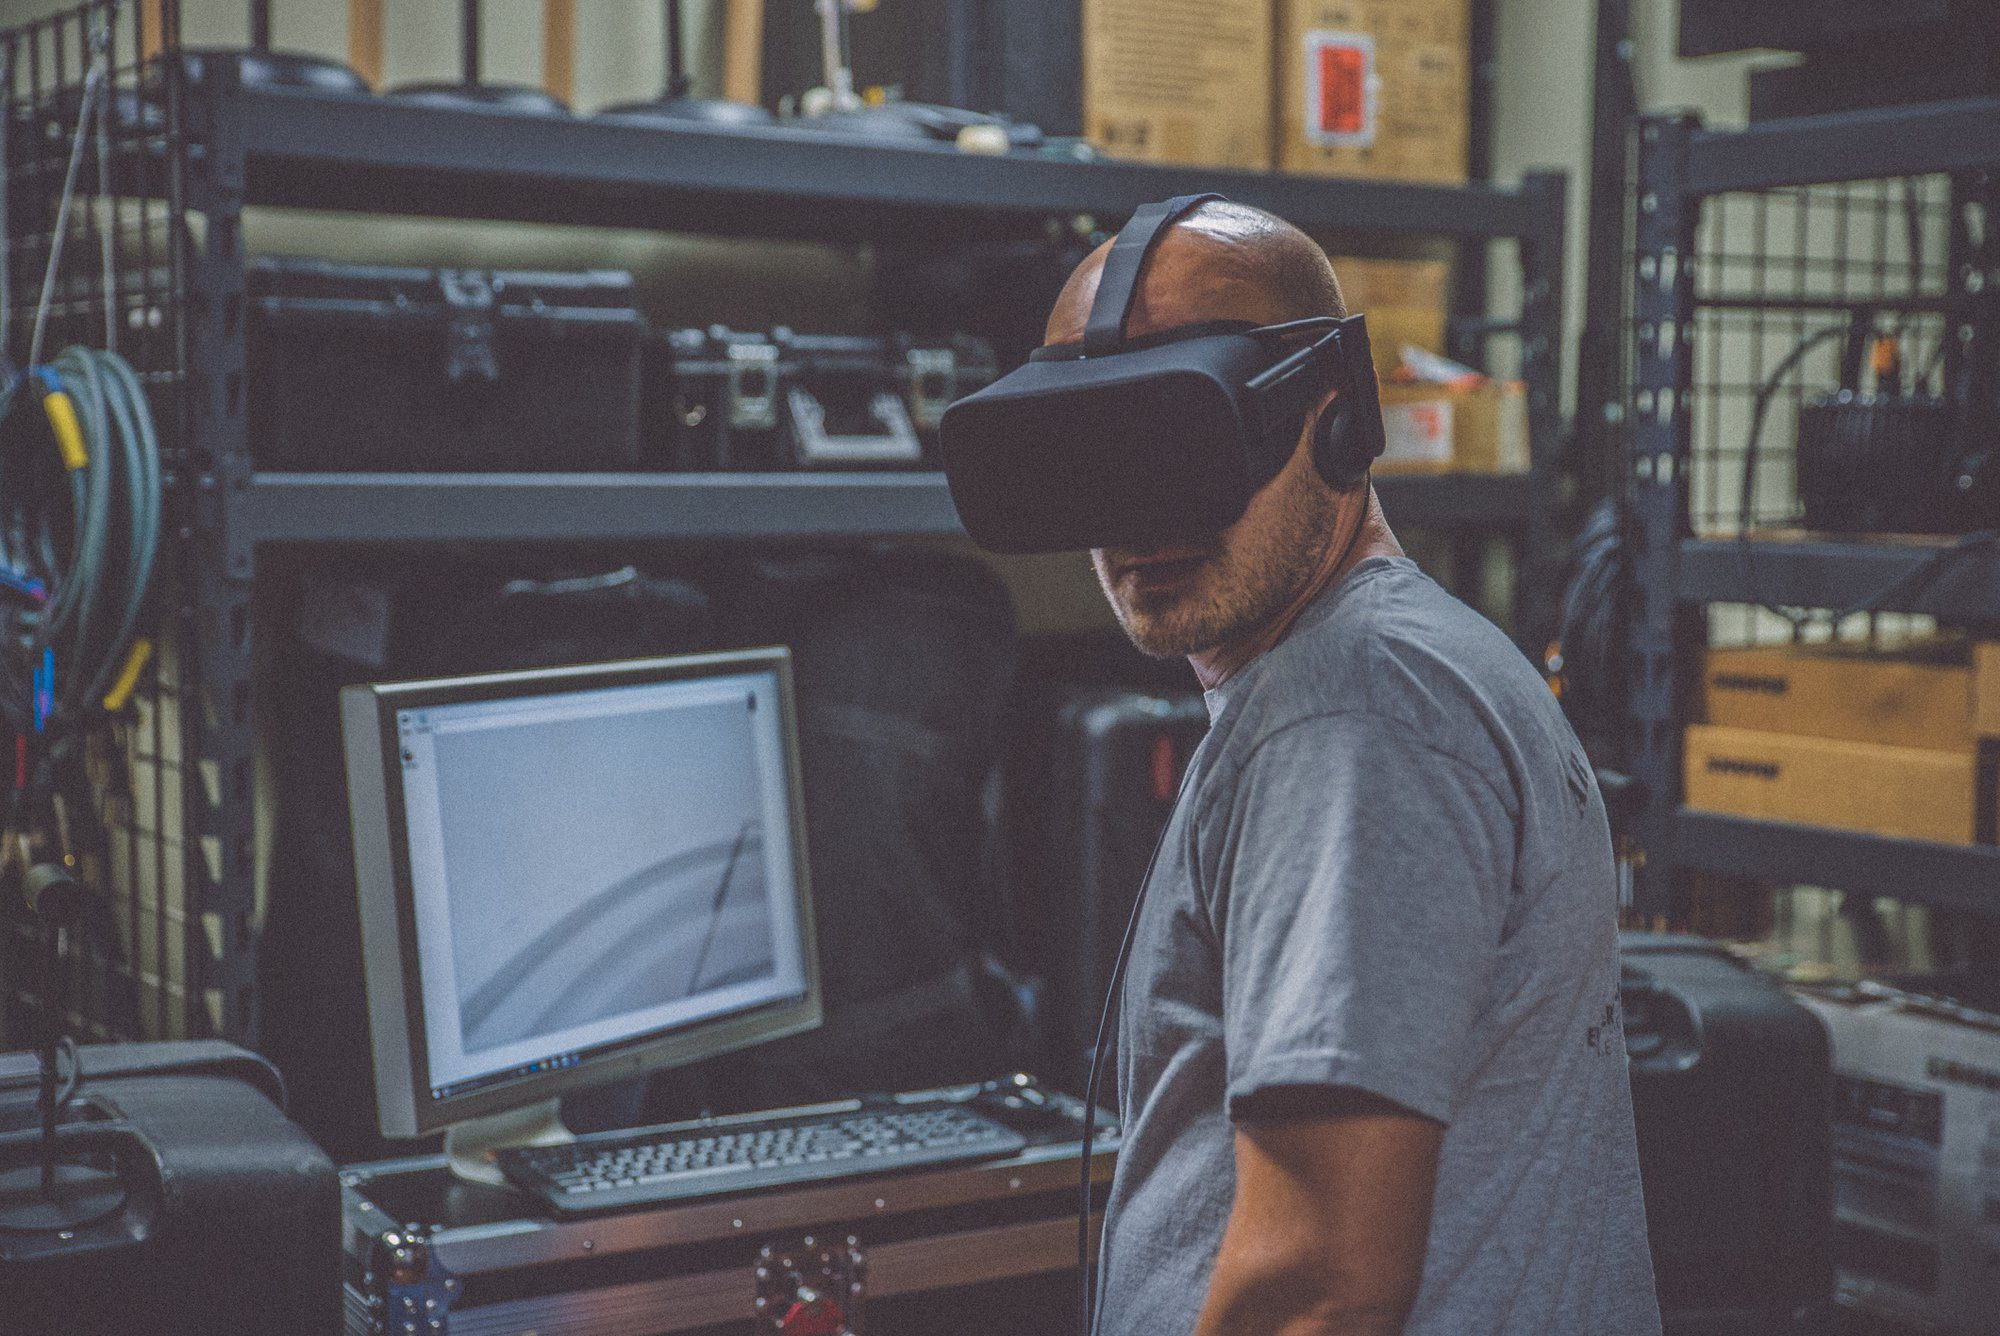 The History of Augmented and Virtual Reality (A Walkthrough from 1838 to the Present)